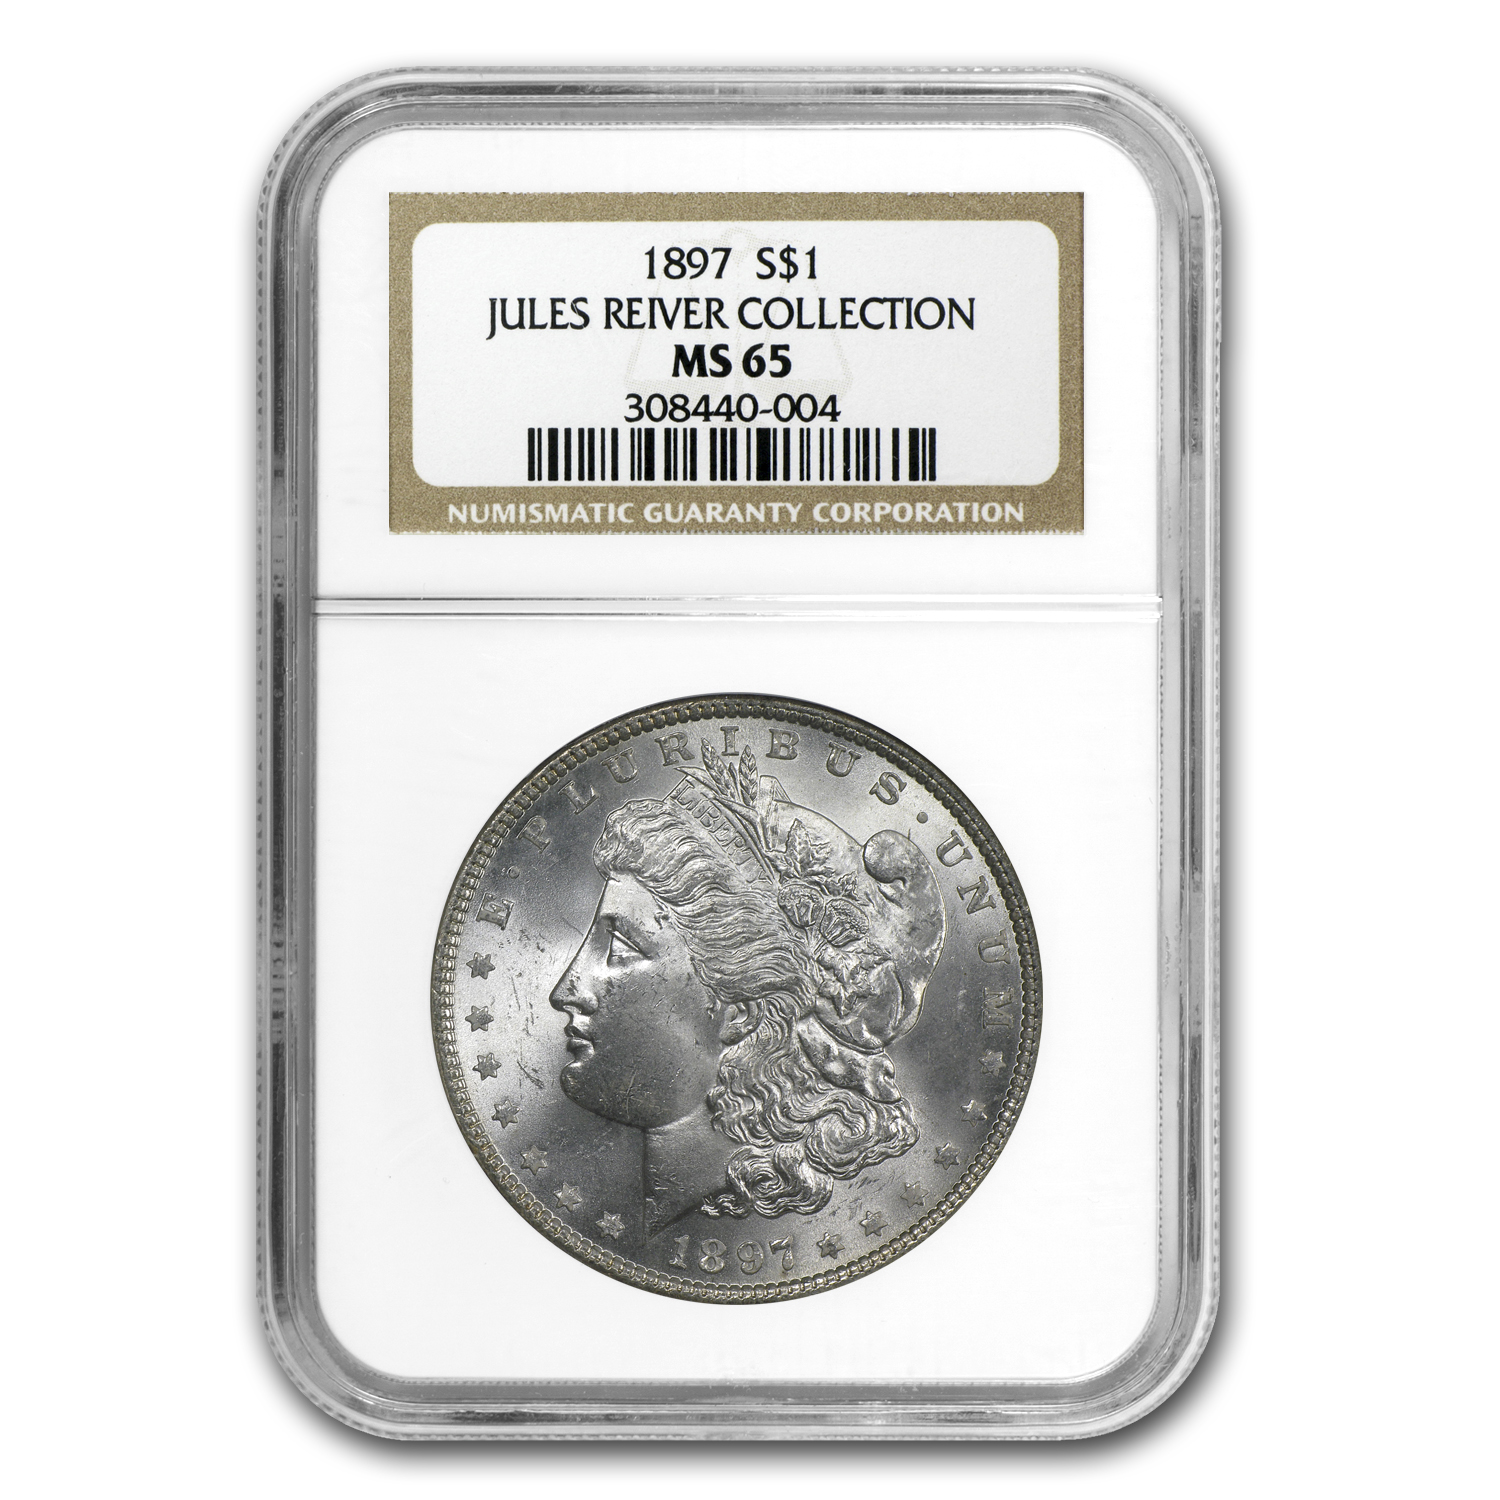 1897 Morgan Dollar - MS-65 NGC - Jules Reiver Collection